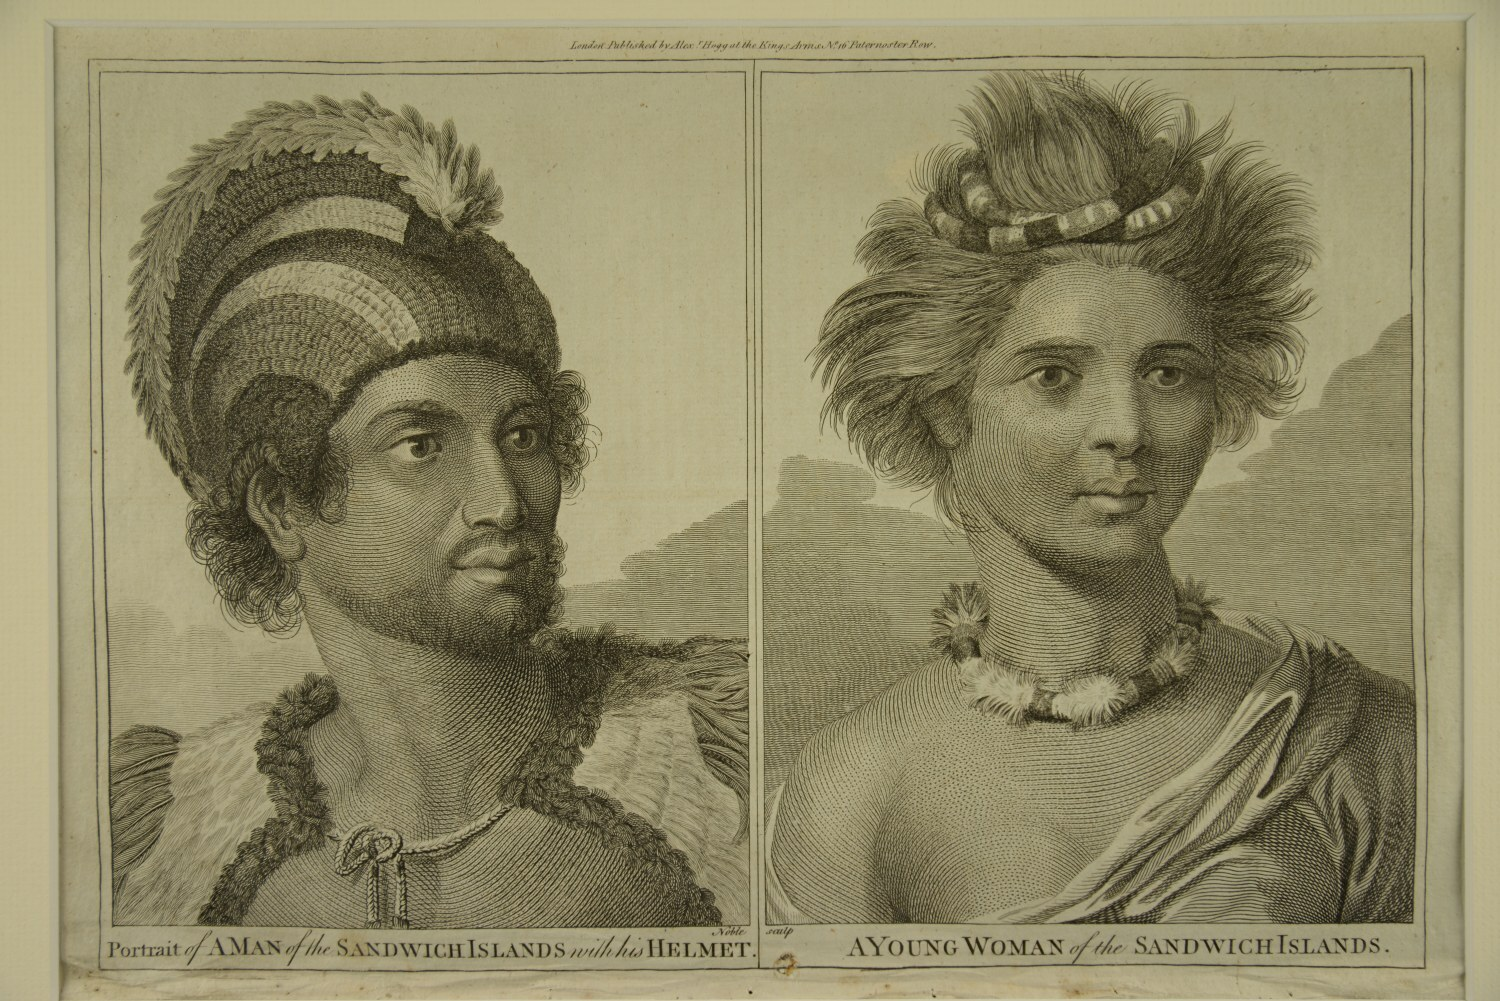 Portrait of a man of the Sandwich Islands with his helmet / A young woman of the Sandwich Islands von John Webber